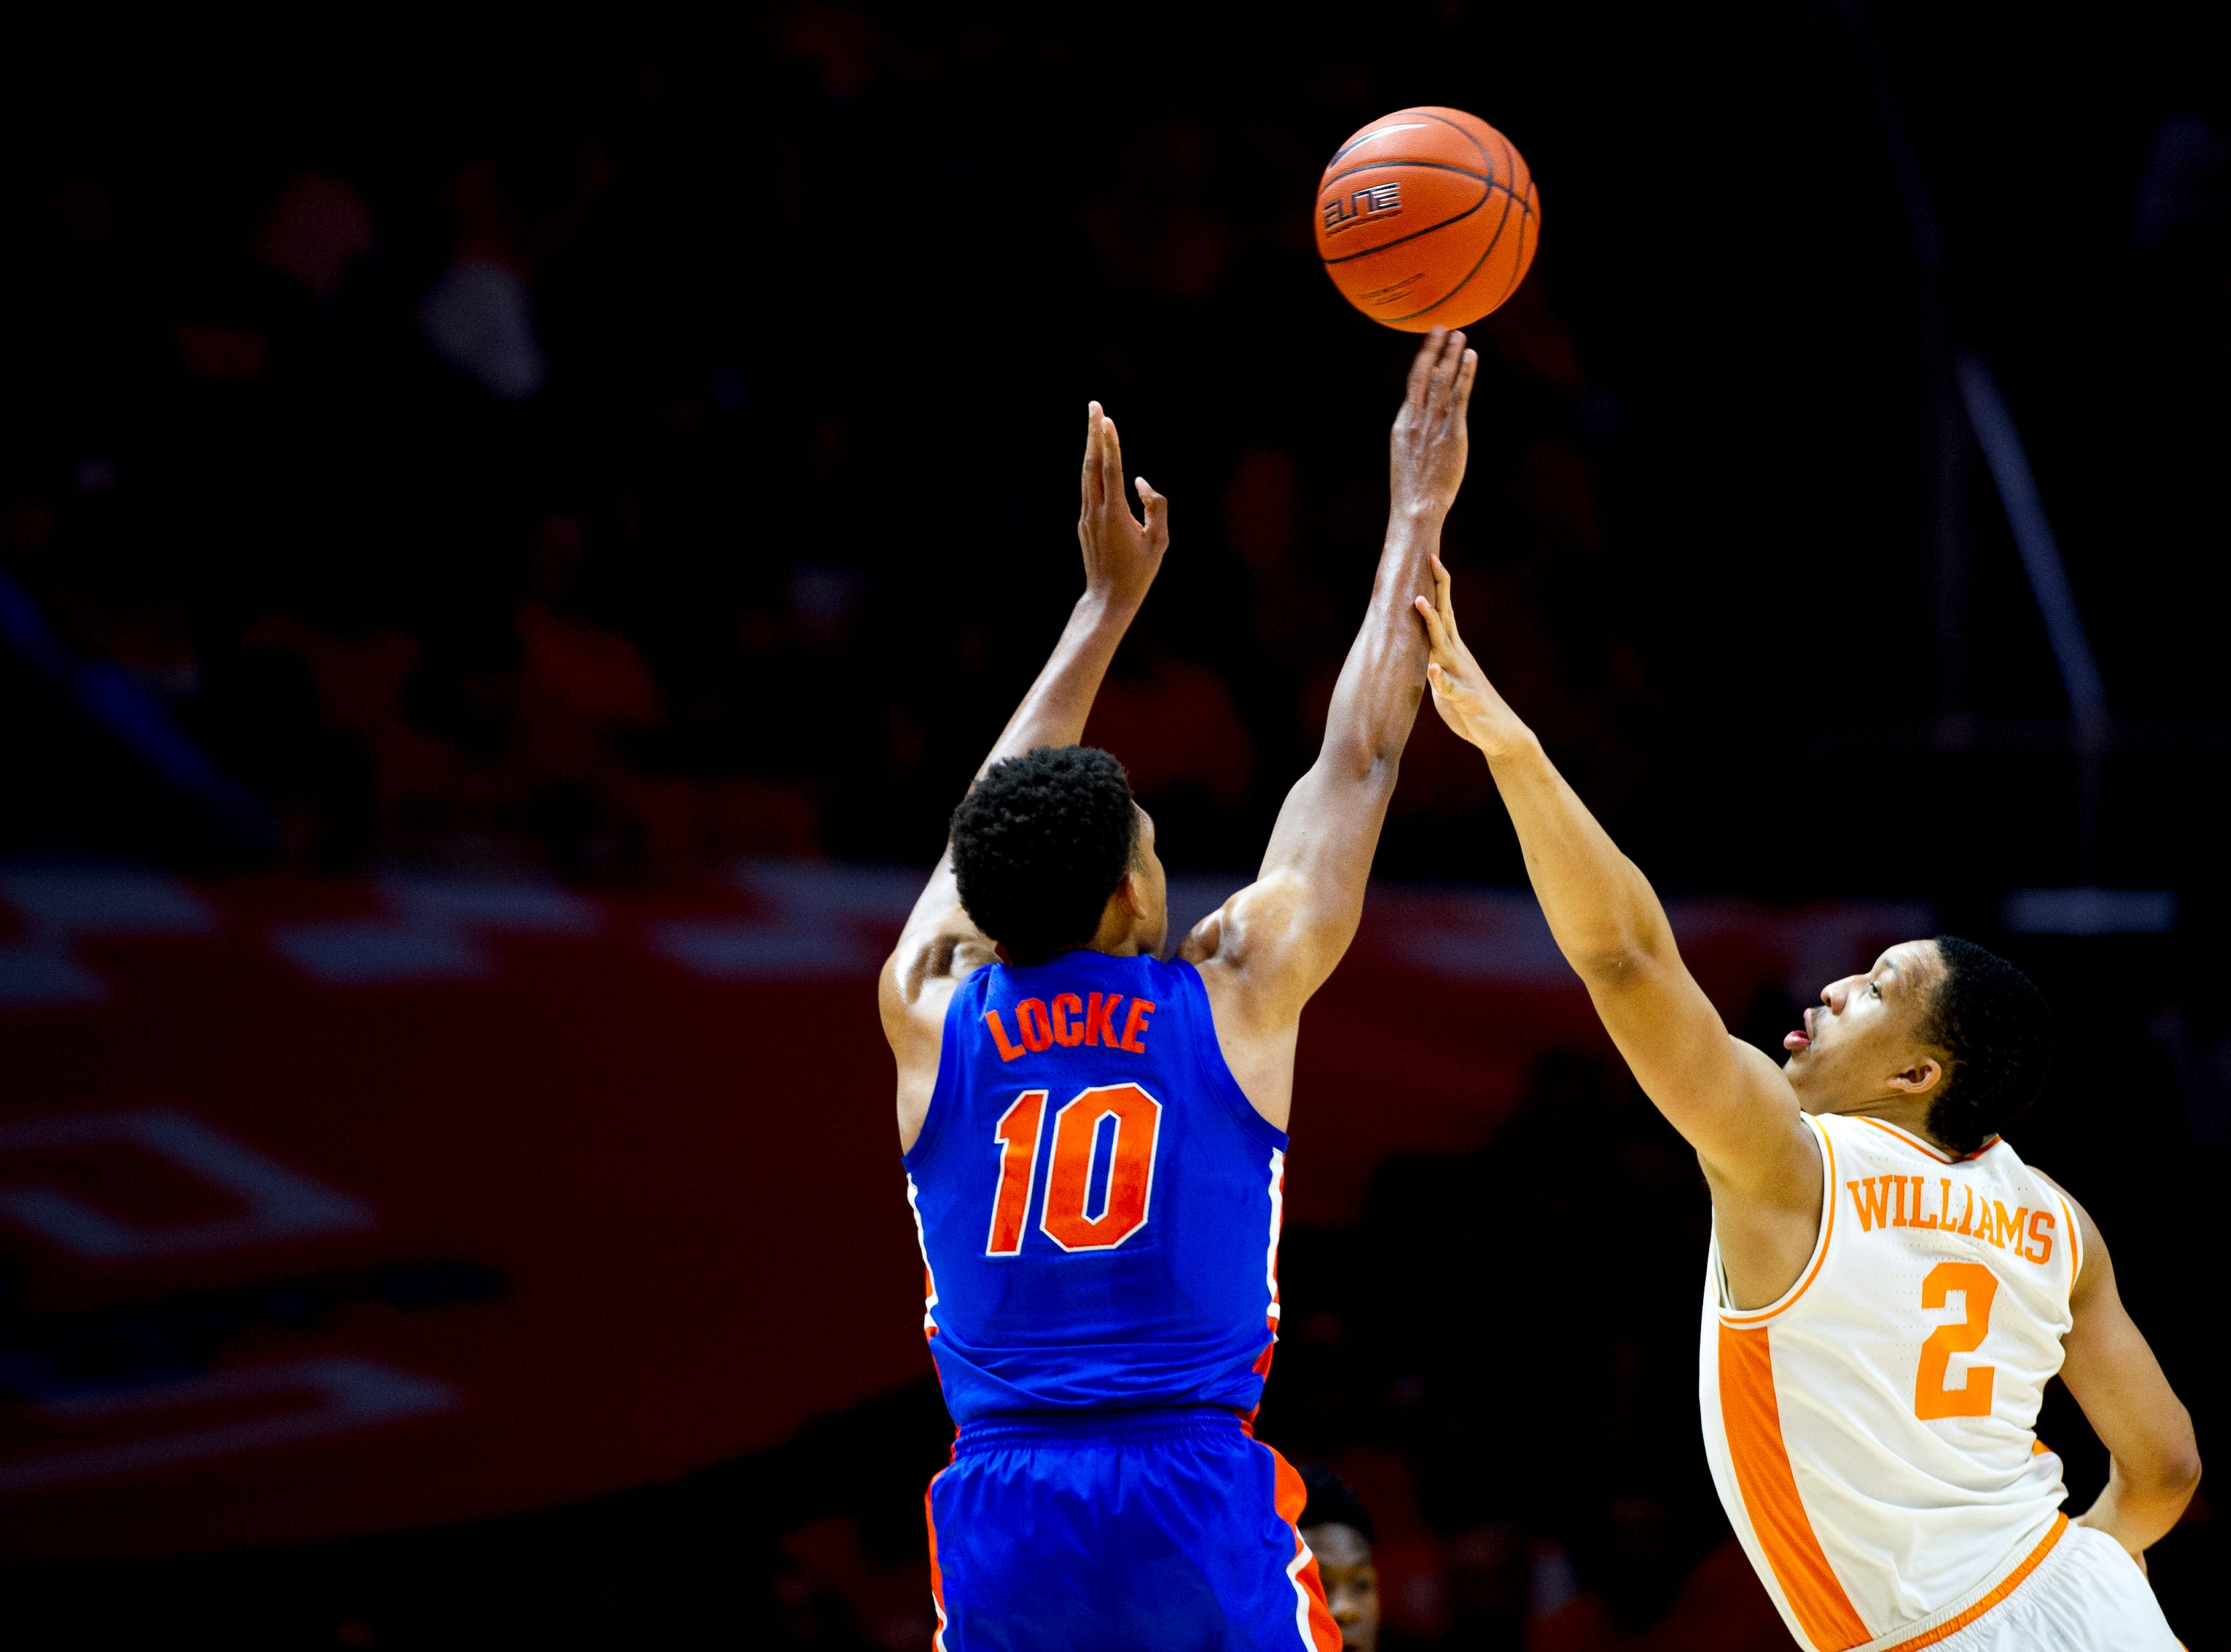 Florida guard Noah Locke (10) shoots the ball as Tennessee forward Grant Williams (2) defends during a game between Tennessee and Florida at Thompson-Boling Arena in Knoxville, Tennessee on Saturday, February 9, 2019.